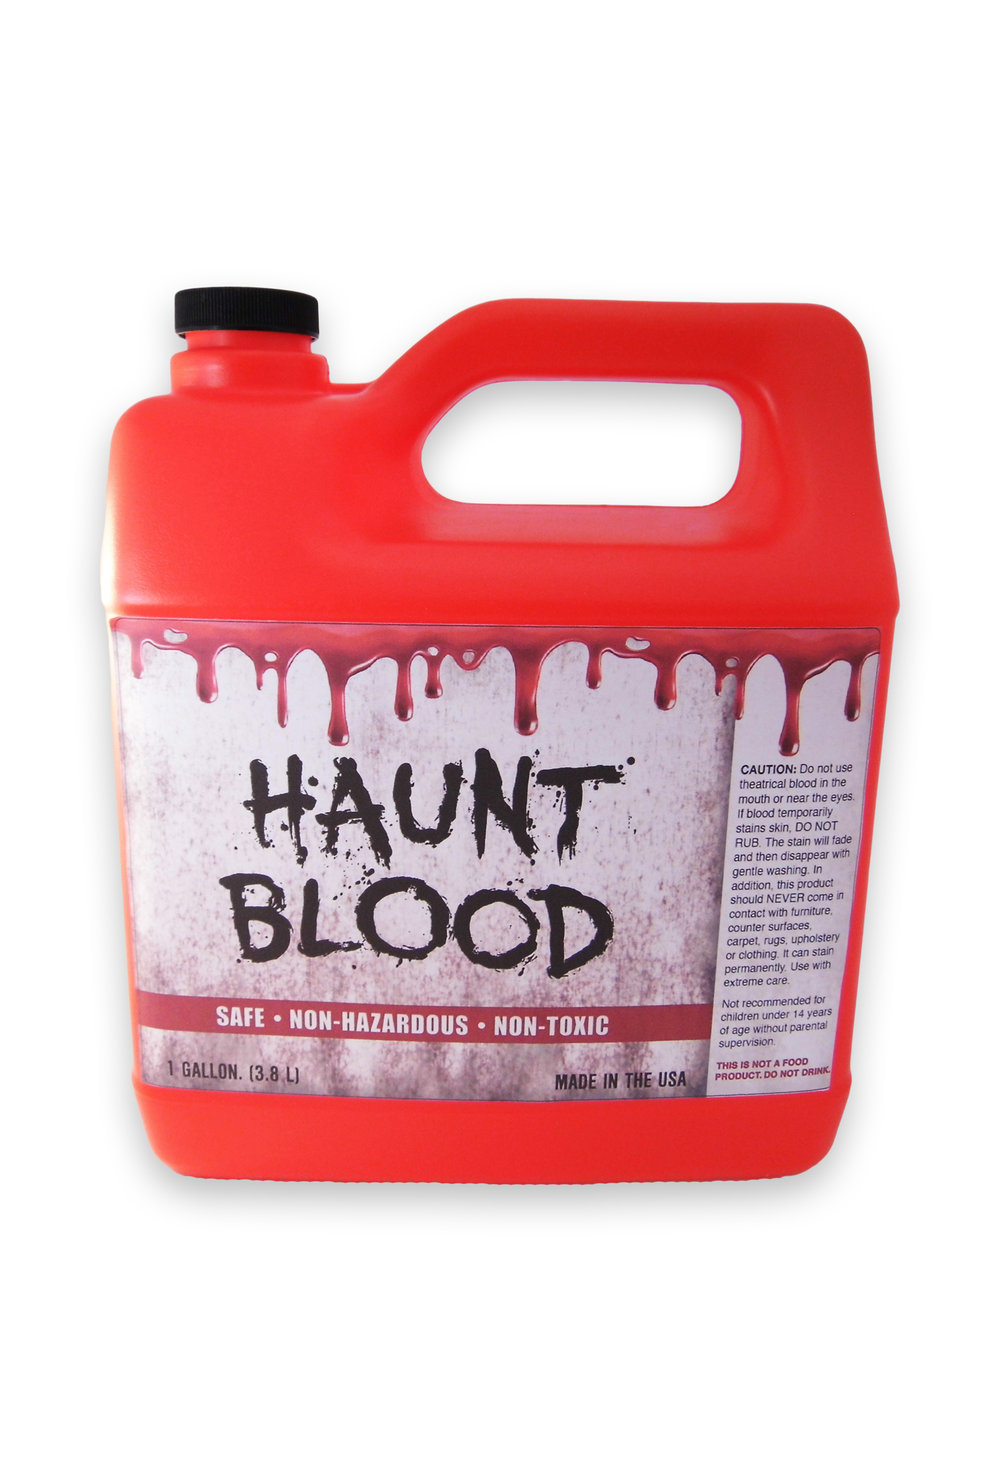 BLR-G  BLOOD  Gallon          A Realistic Touch To Your Halloween Costume               -  Made In USA